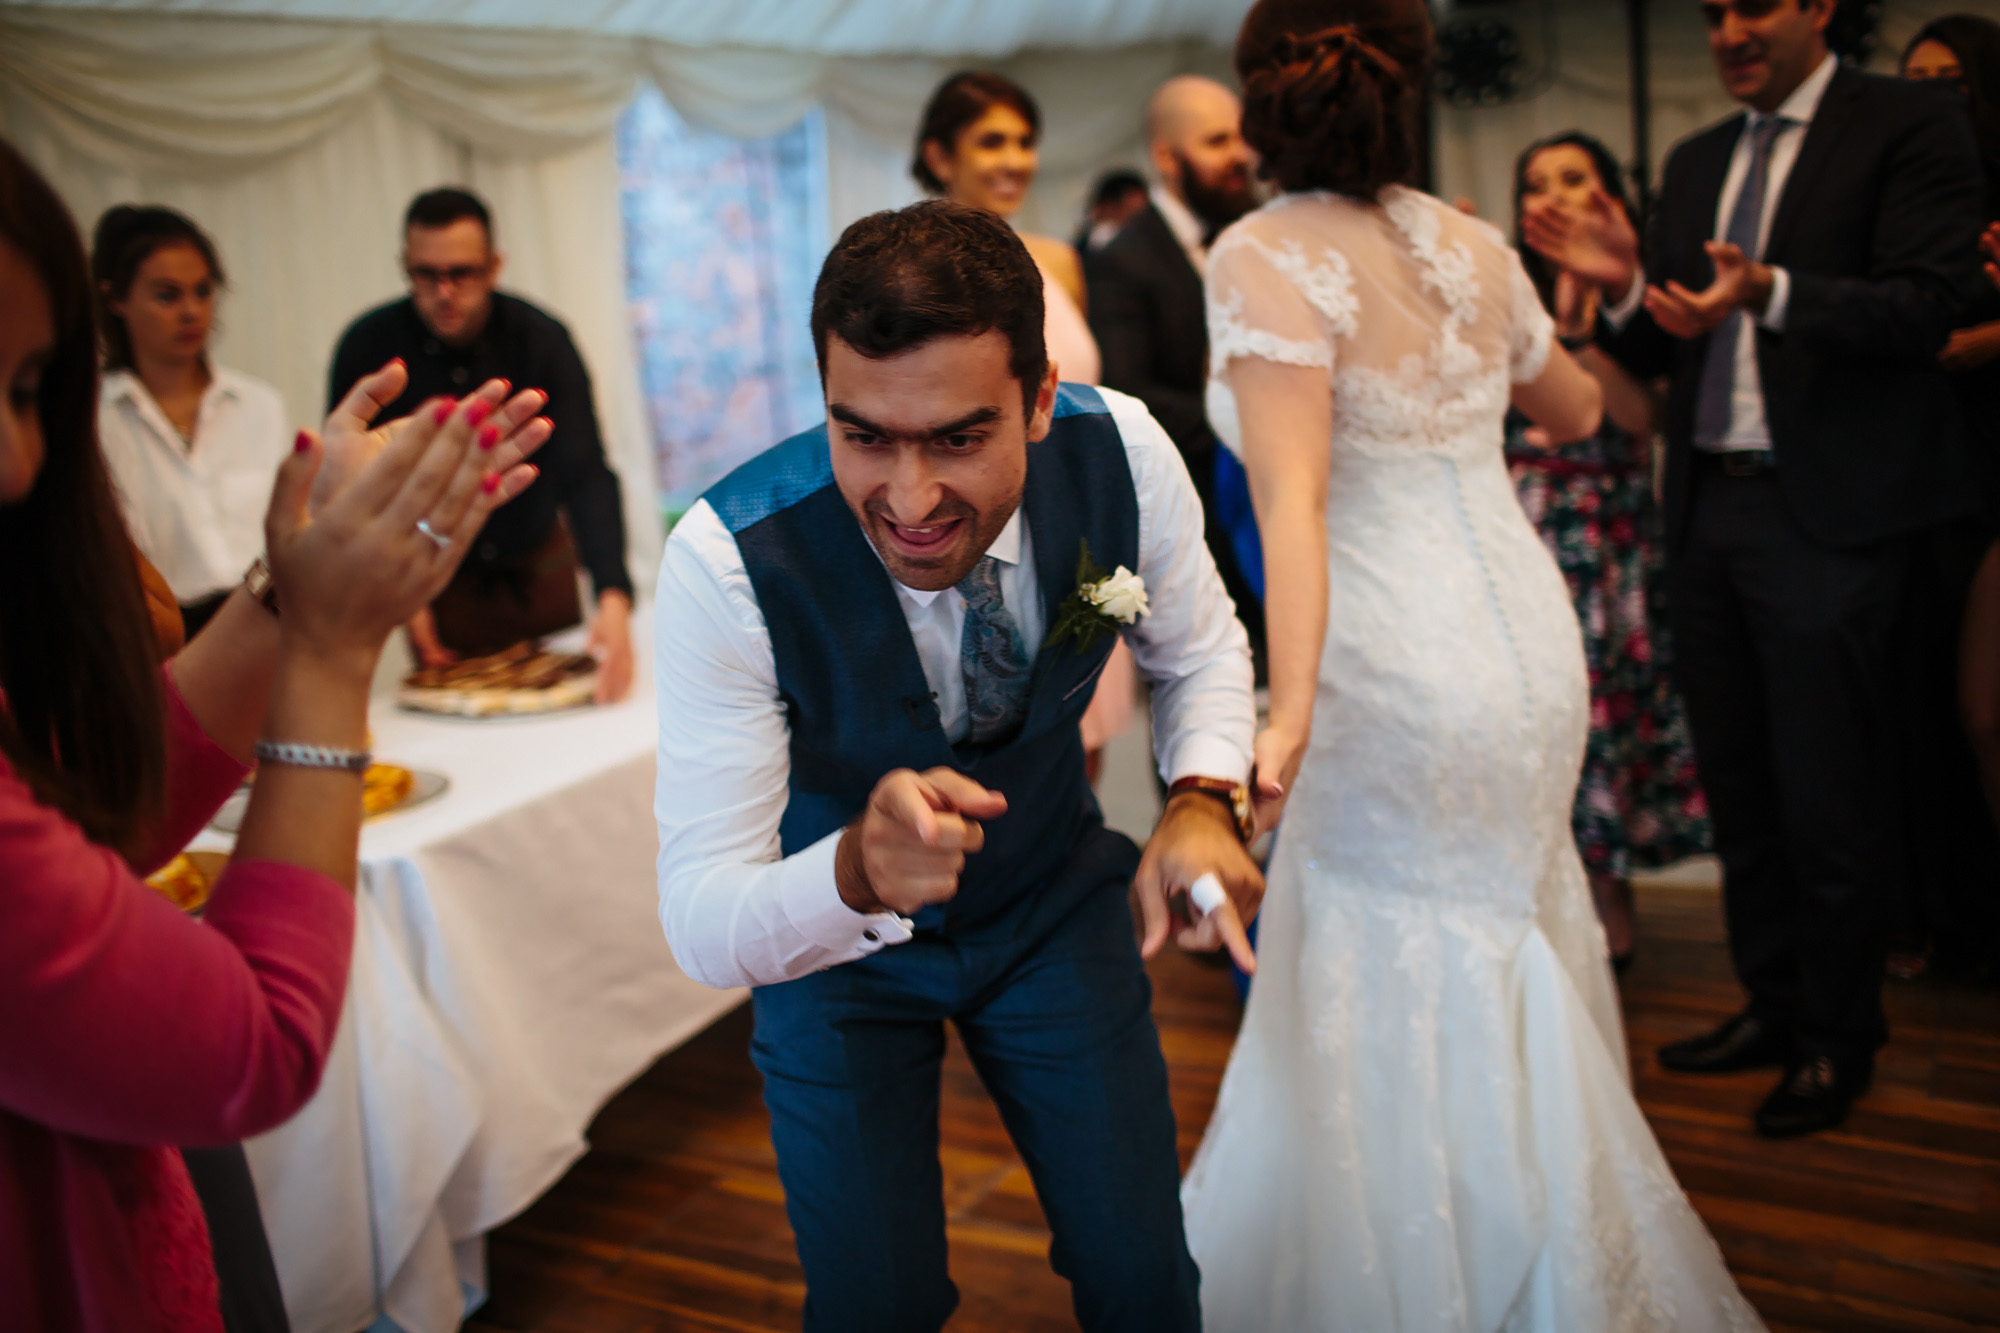 Groom dancing at a wedding with a child